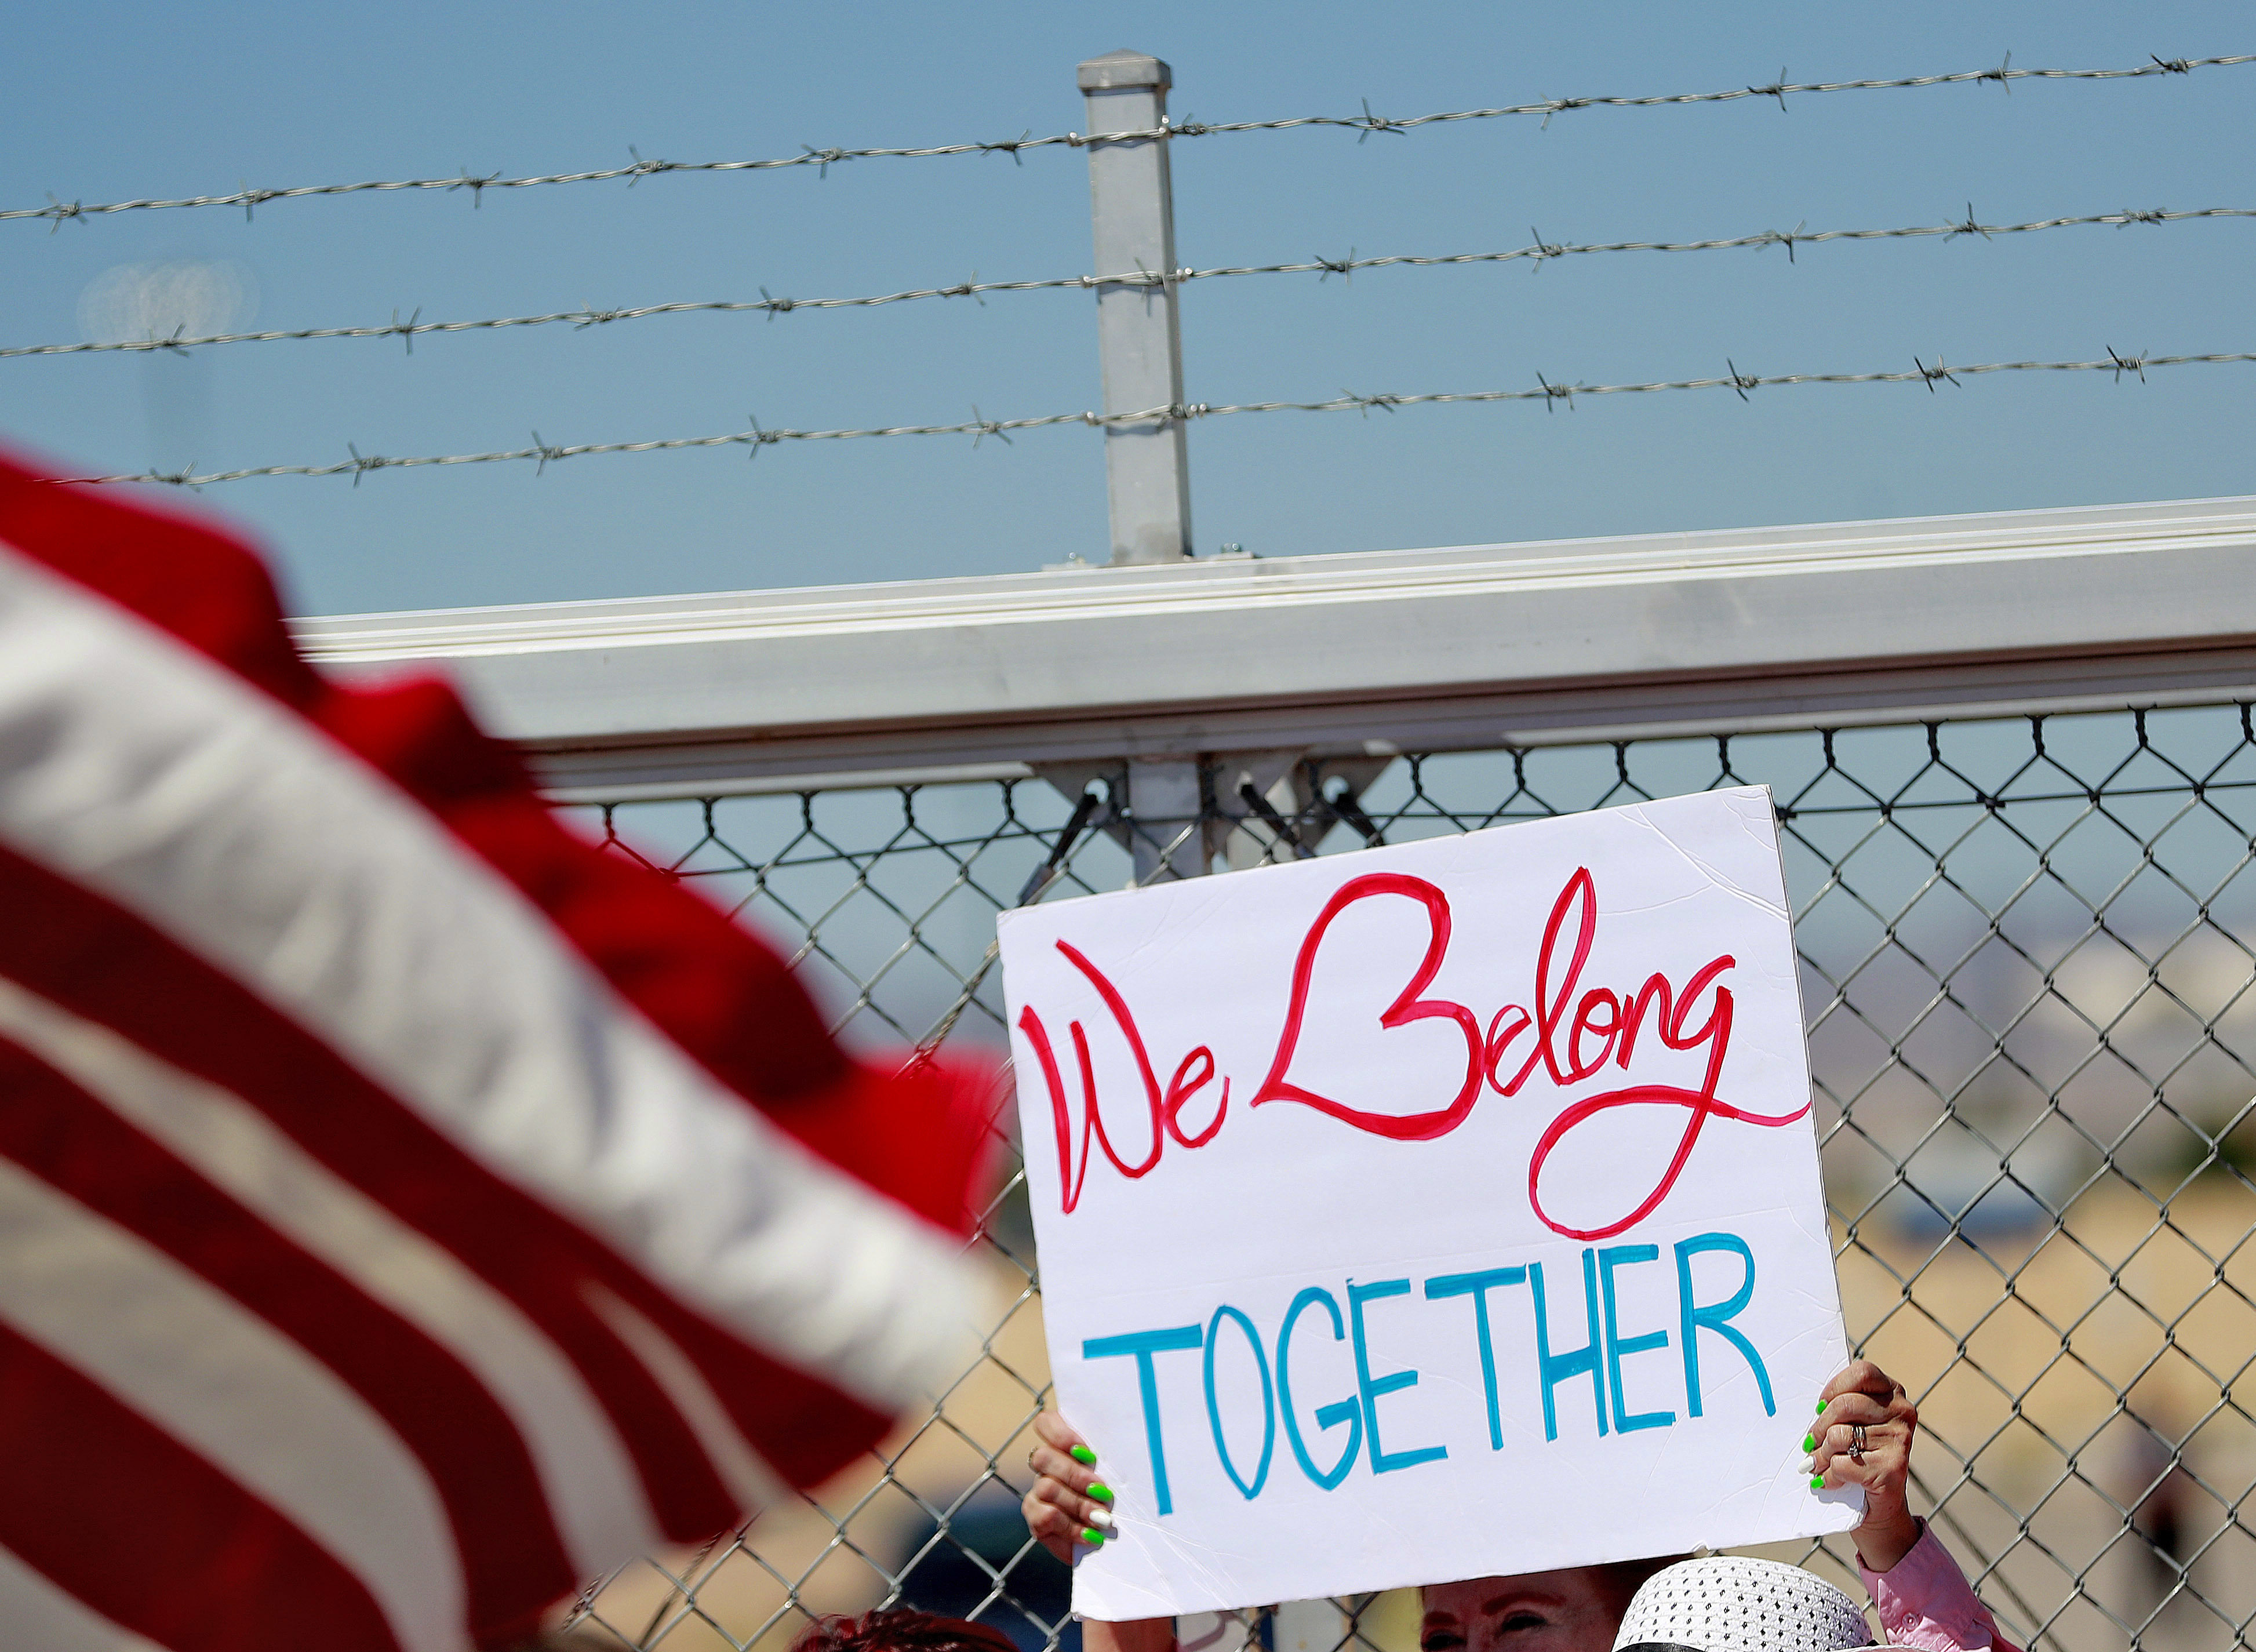 A protester holds a sign outside a closed gate at the Port of Entry facility, June 21, 2018, in Fabens, Texas, where tent shelters are being used to house separated family members.